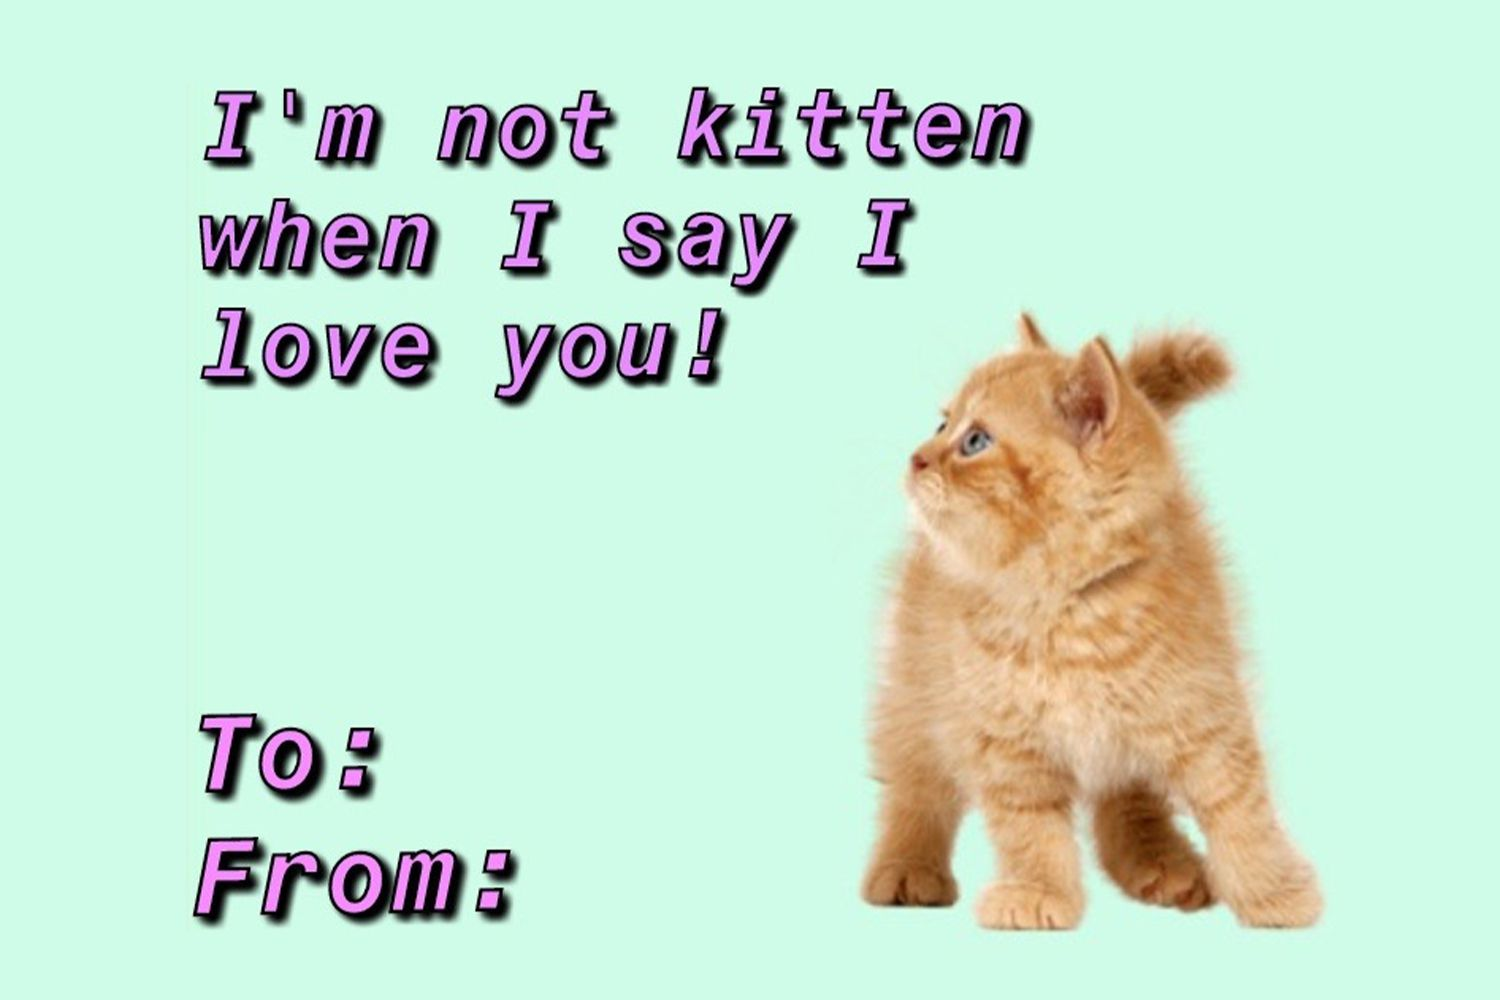 I'm not kitten when I say I love you